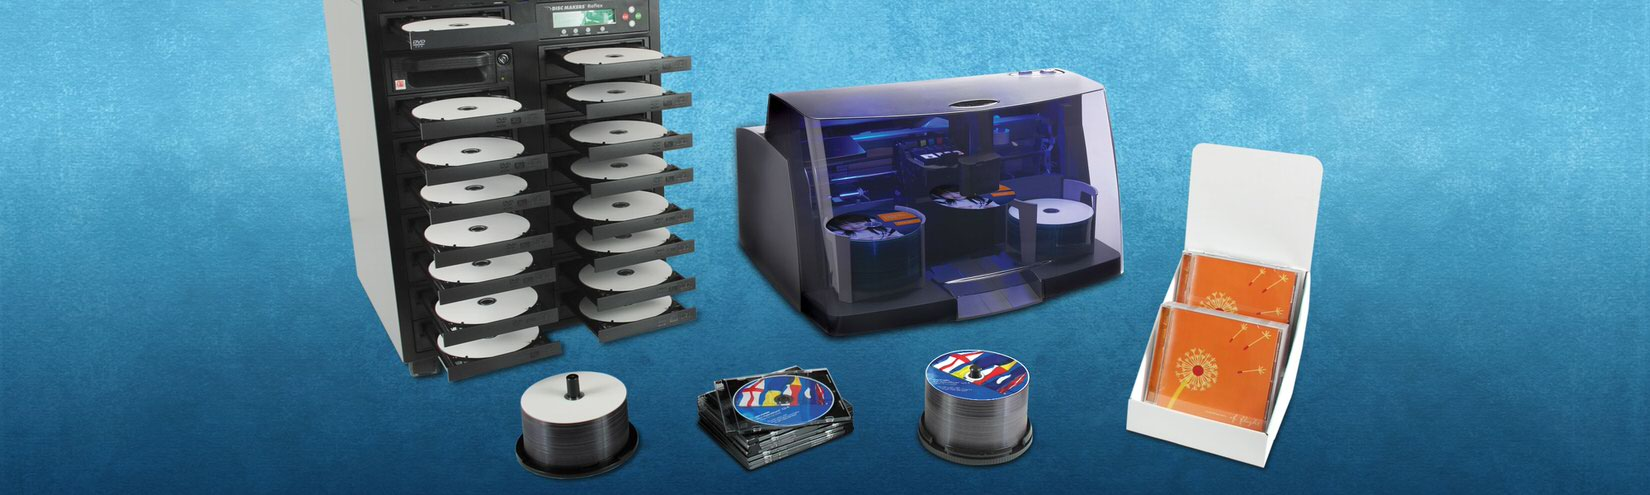 CD DVD Duplicator Bundles